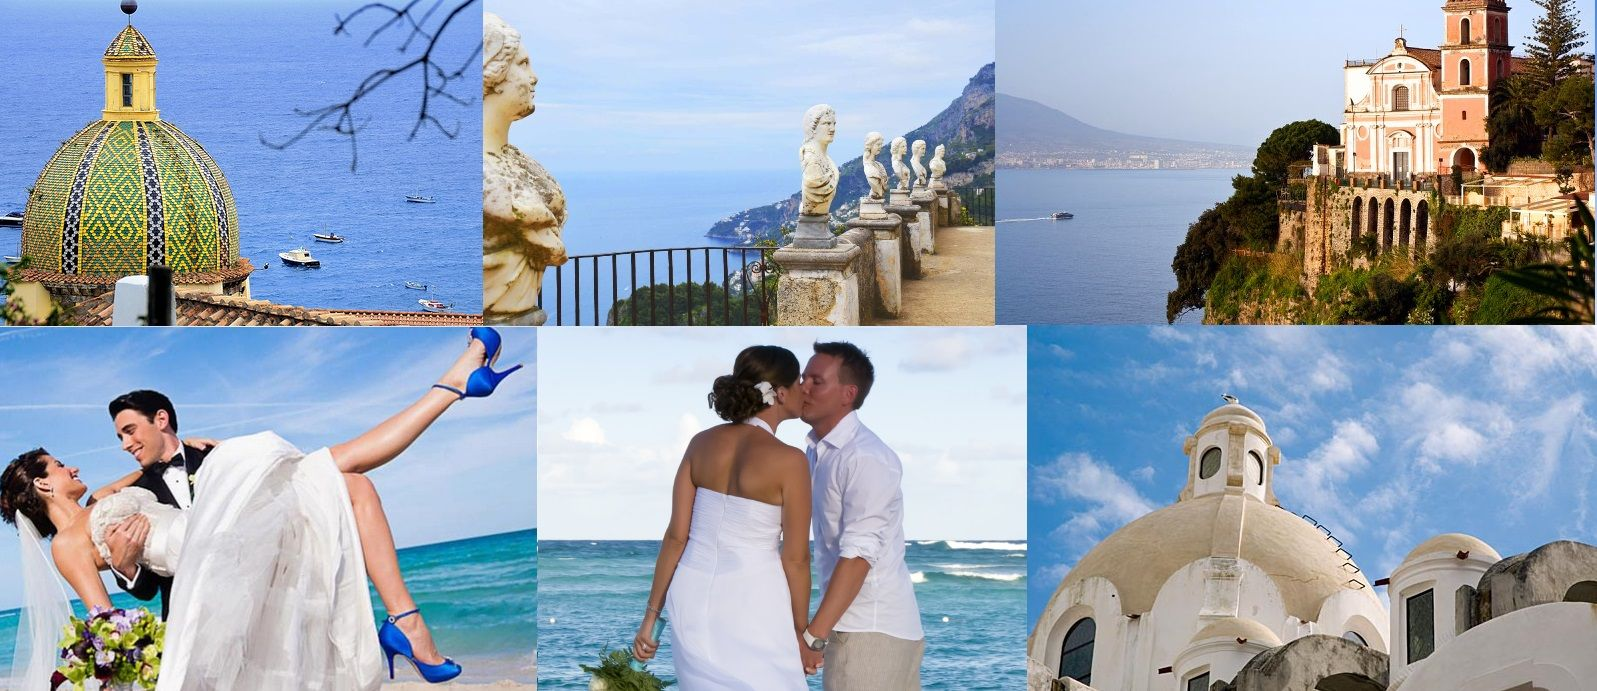 Luxury Italian Wedding Venues. Yacht Charter to get married in Capri, Positano, Amalfi, Ravello and Sorrento. Hire our yachts to set aboard your photo shoot!  Web Site: www.amalfisails.com E-Mail: info@amalfisails.it